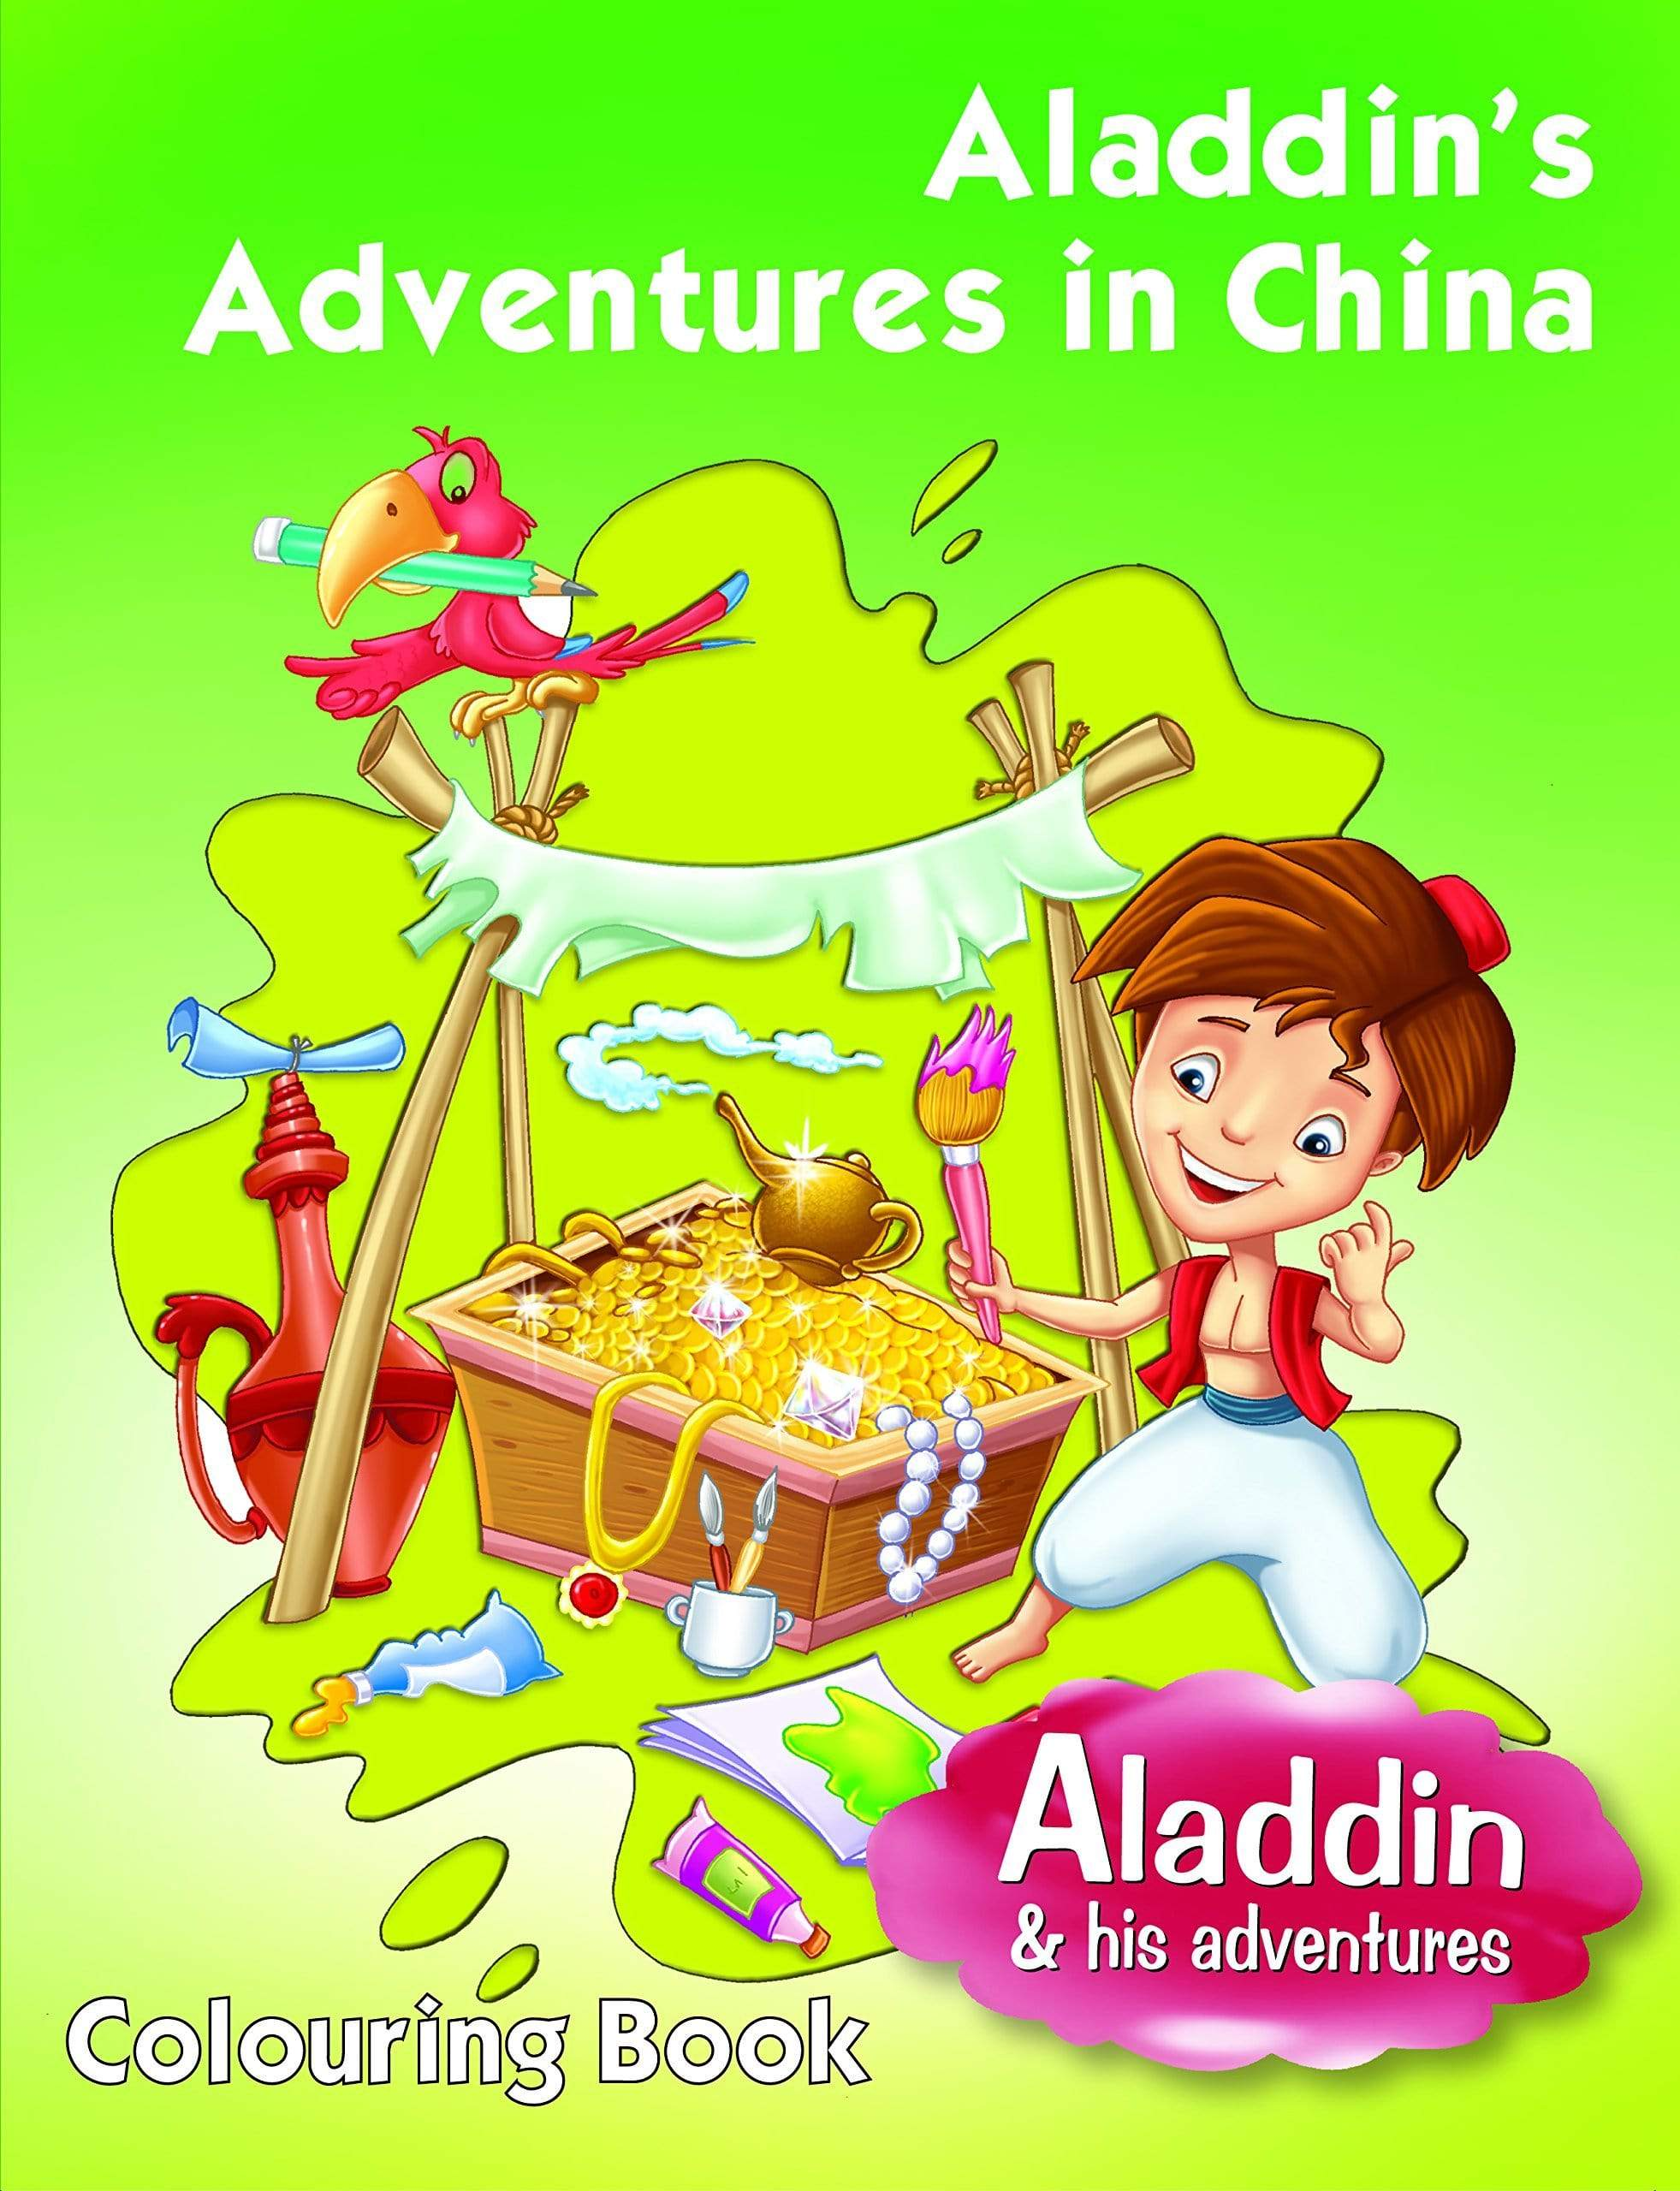 Aladdin's Adventures In China - Colouring Book